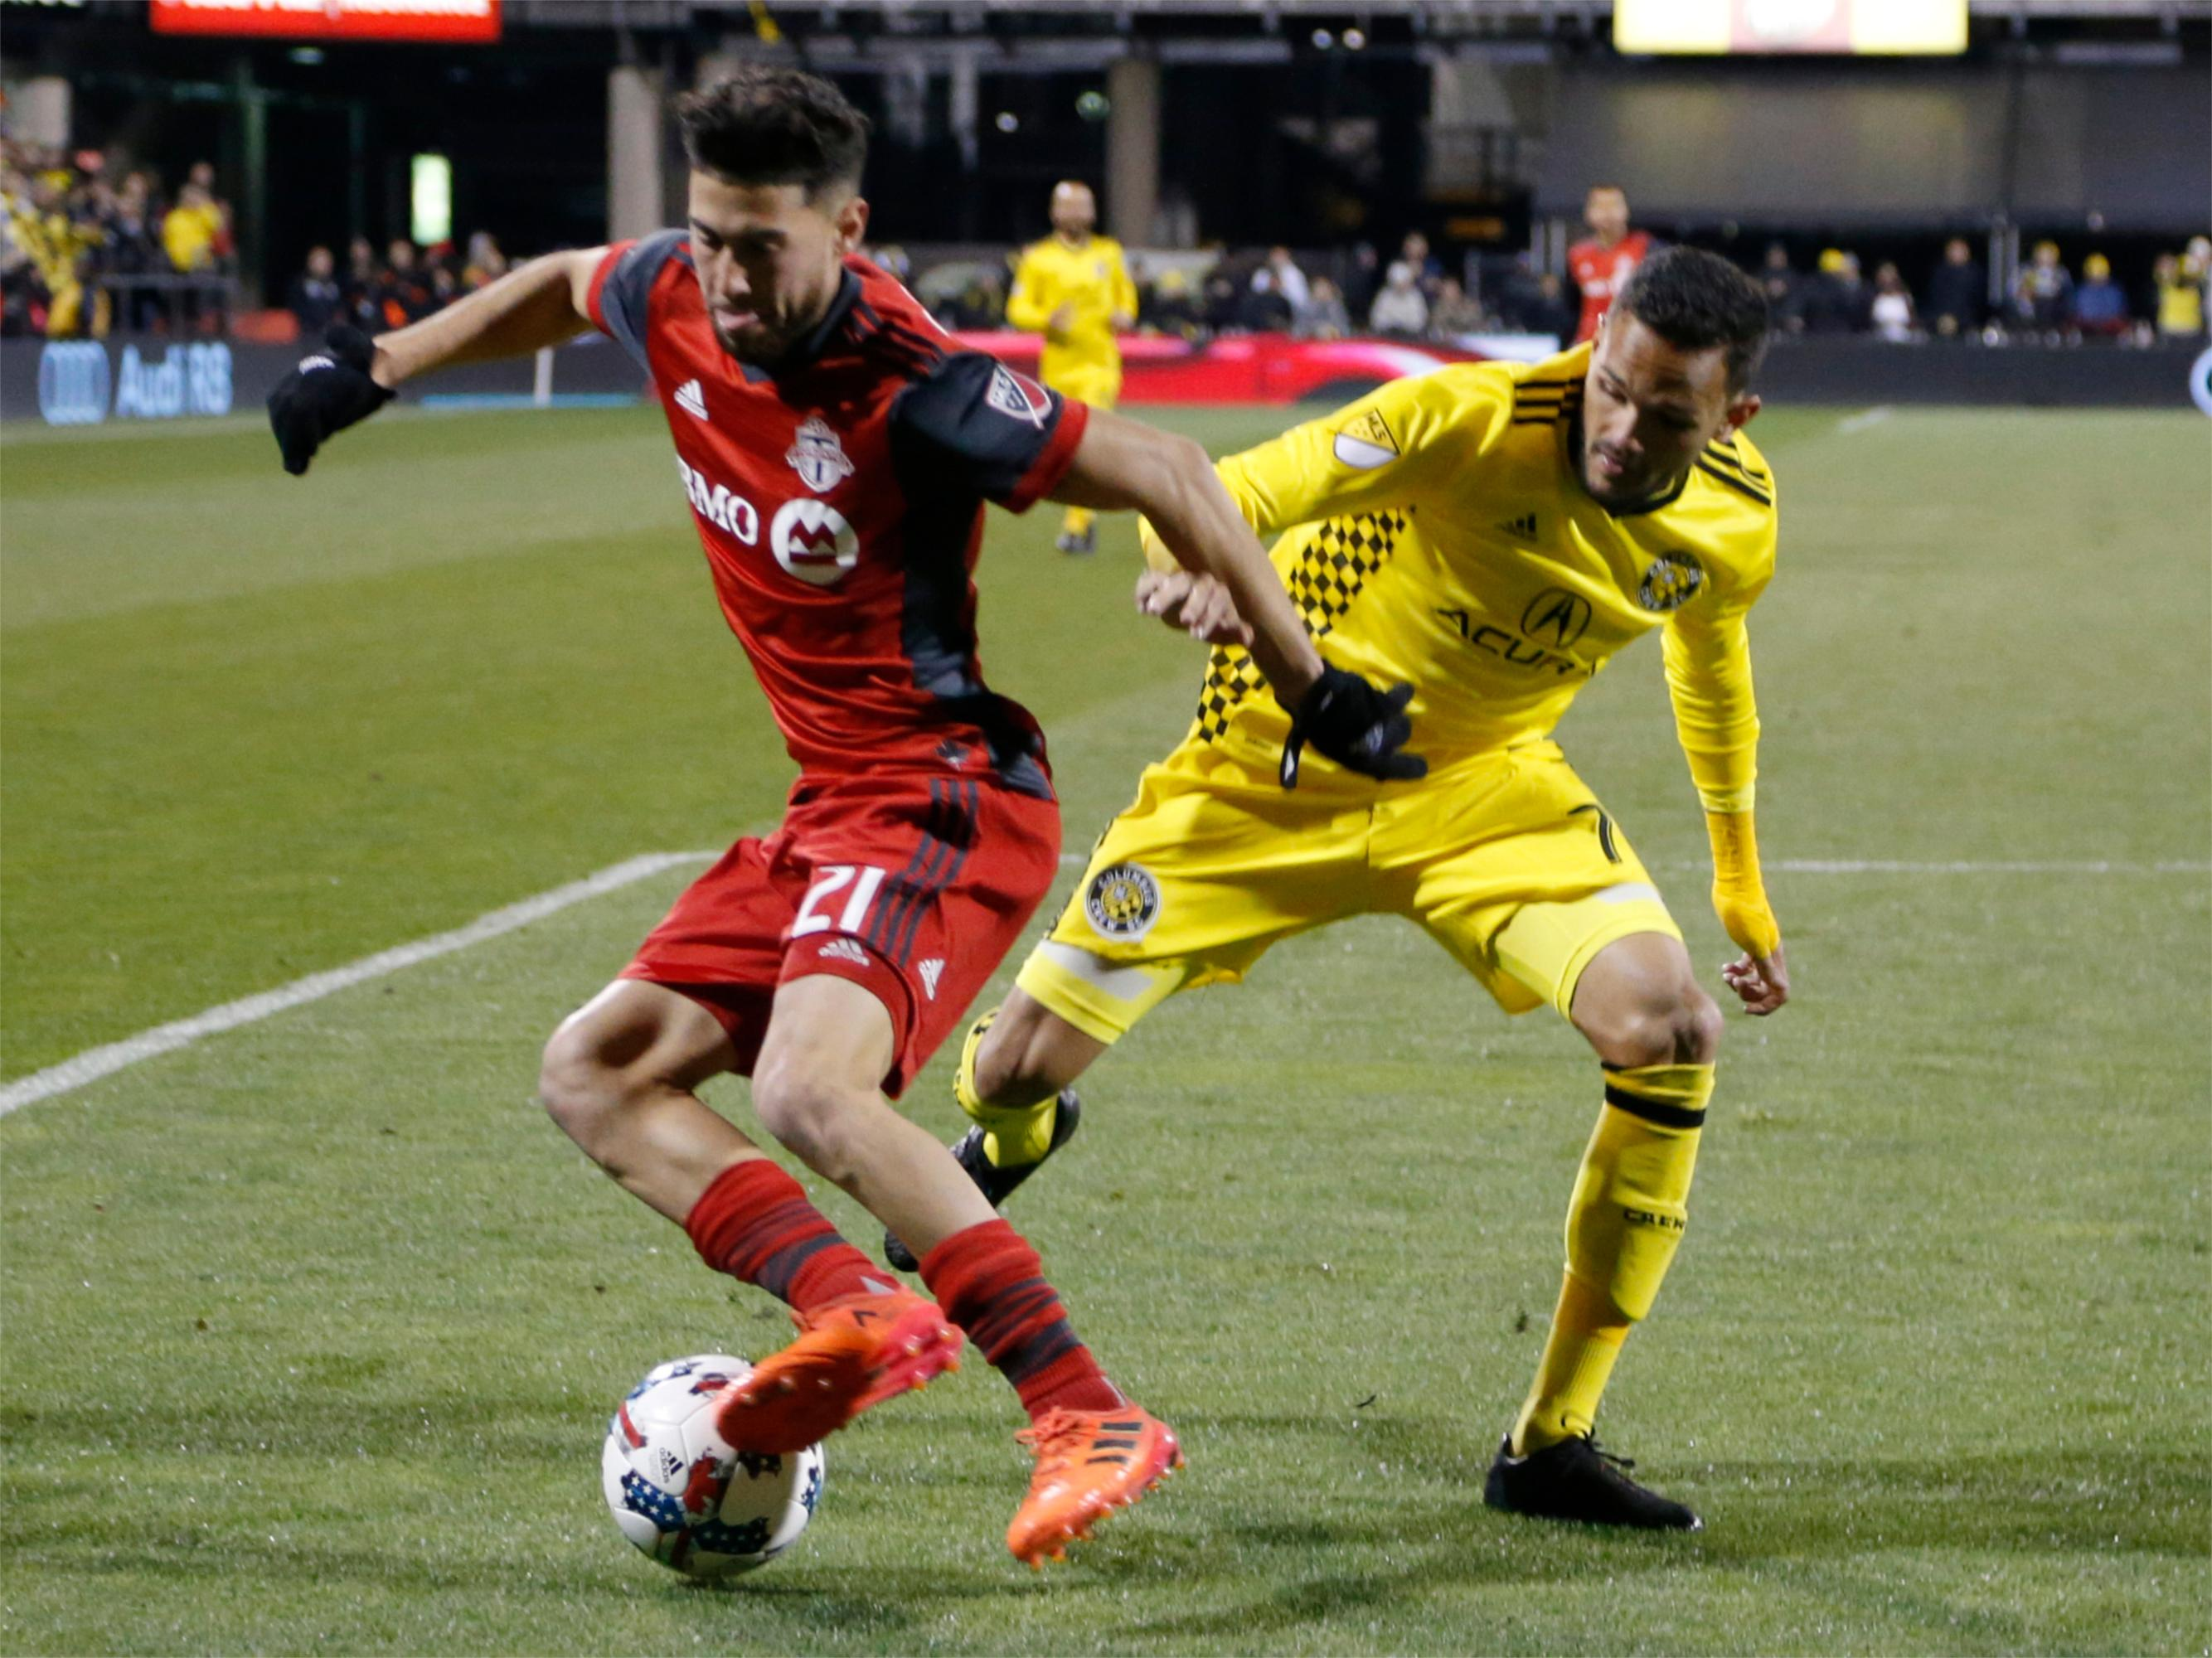 Toronto FC's Jonathan Osorio, left, and Columbus Crew's Artur fight for a loose ball during the second half of an MLS Eastern Conference championship soccer match Tuesday, Nov. 21, 2017, in Columbus, Ohio. The match ended in a 0-0 tie. (AP Photo/Jay LaPrete)